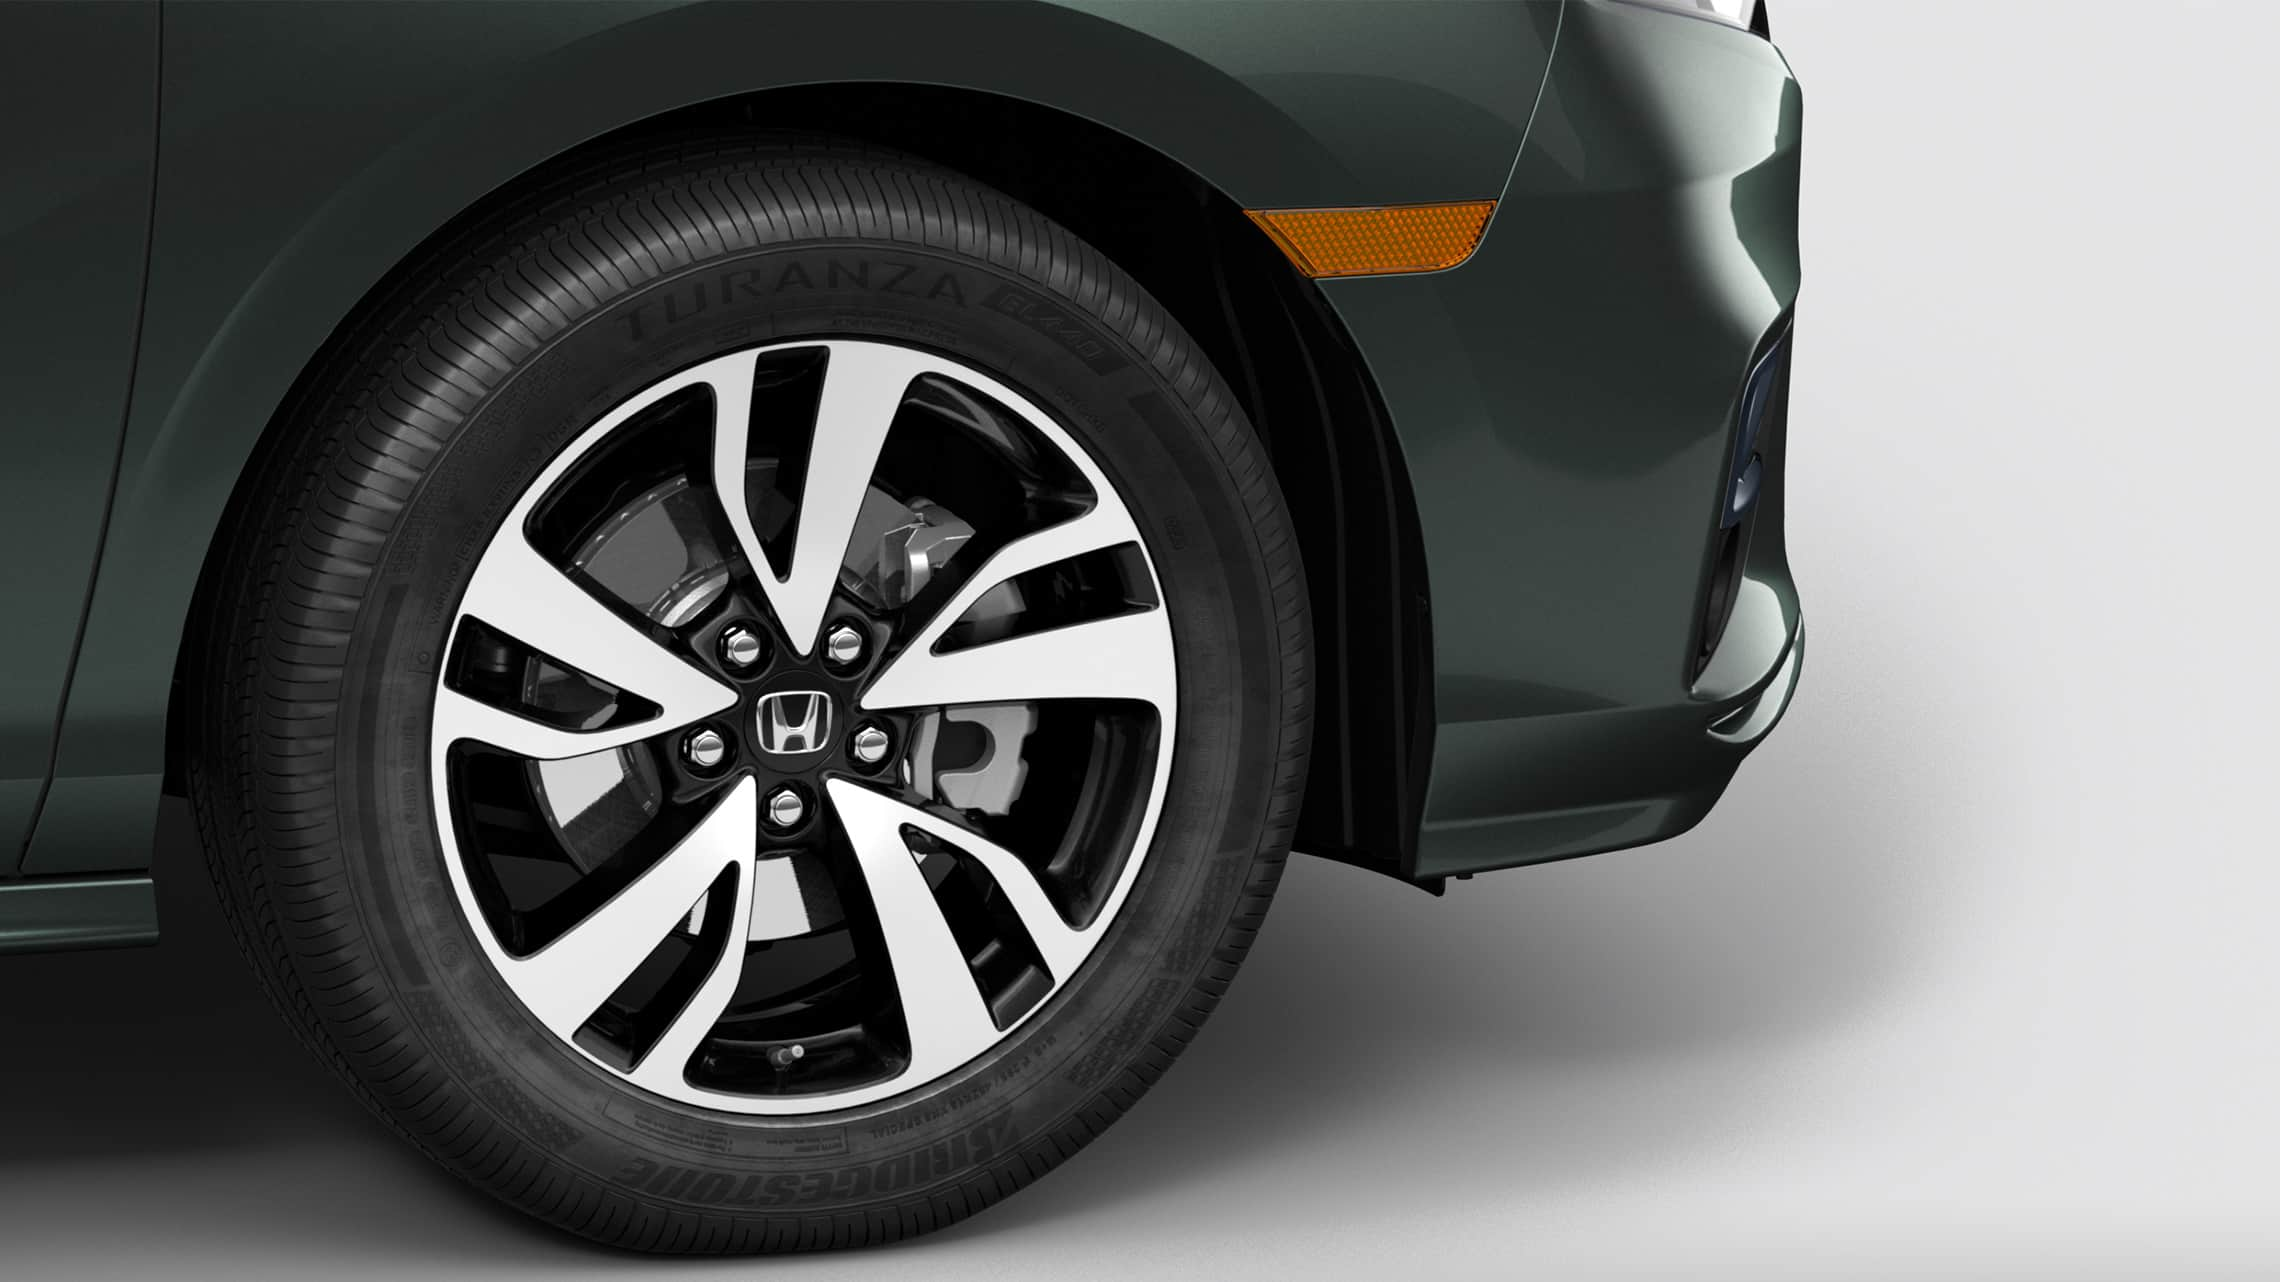 19-inch alloy wheel detail on 2020 Honda Odyssey Elite in Forest Mist Metallic.